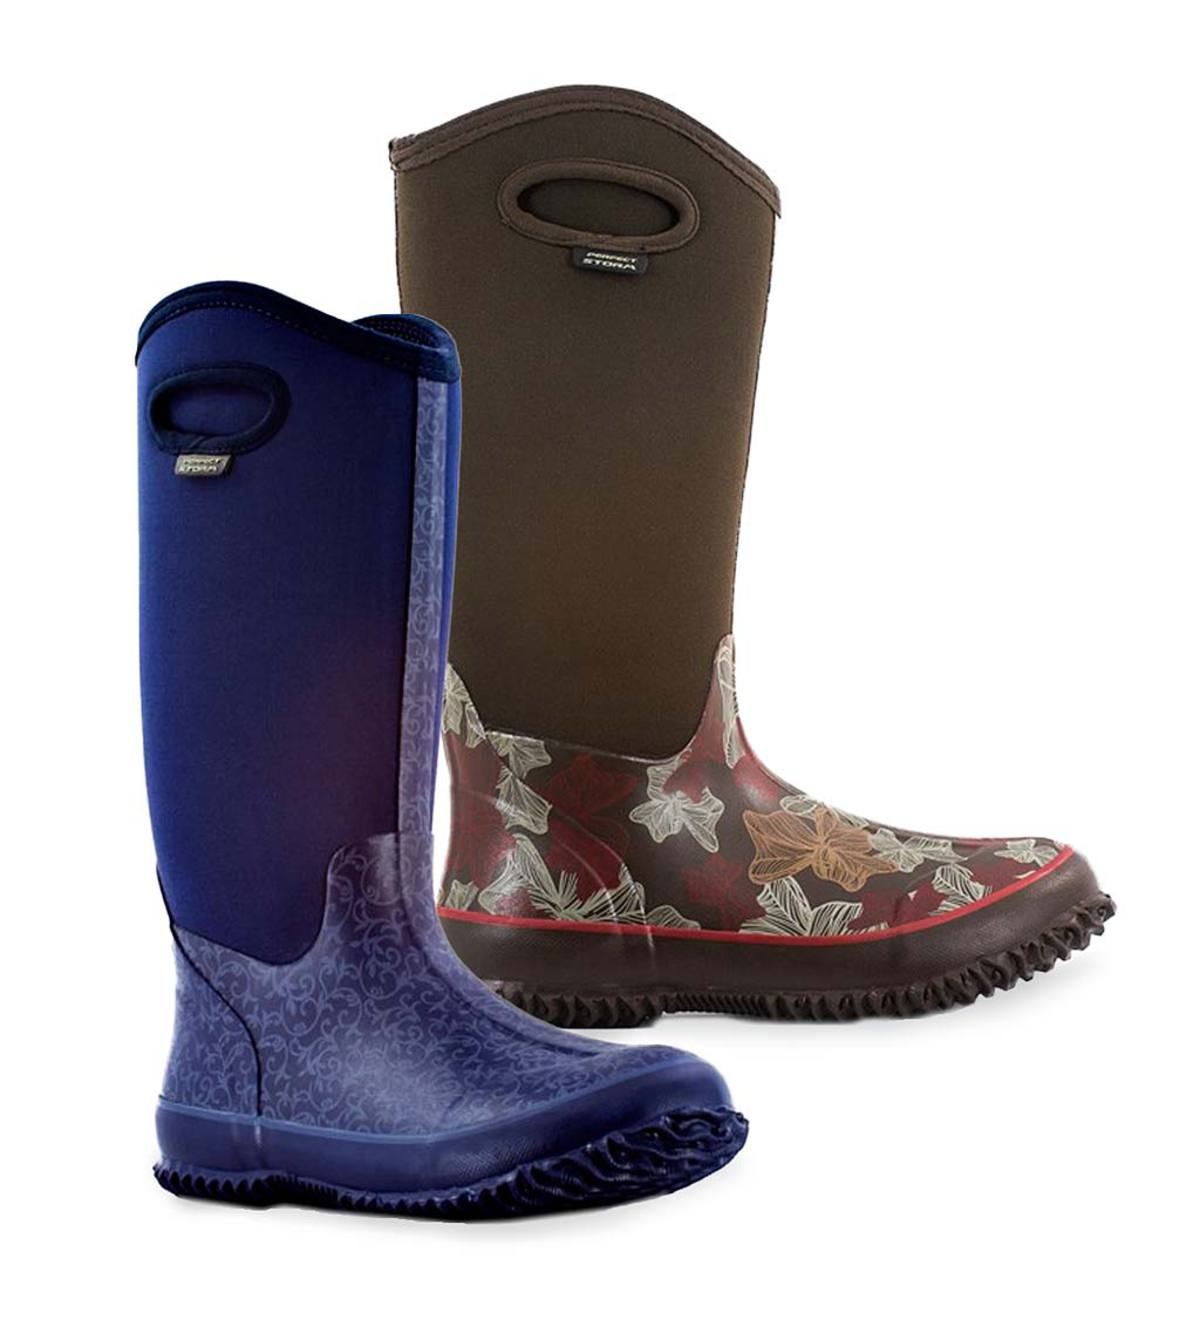 Women's Waterproof Rain High Boot With Perform Shield Handle